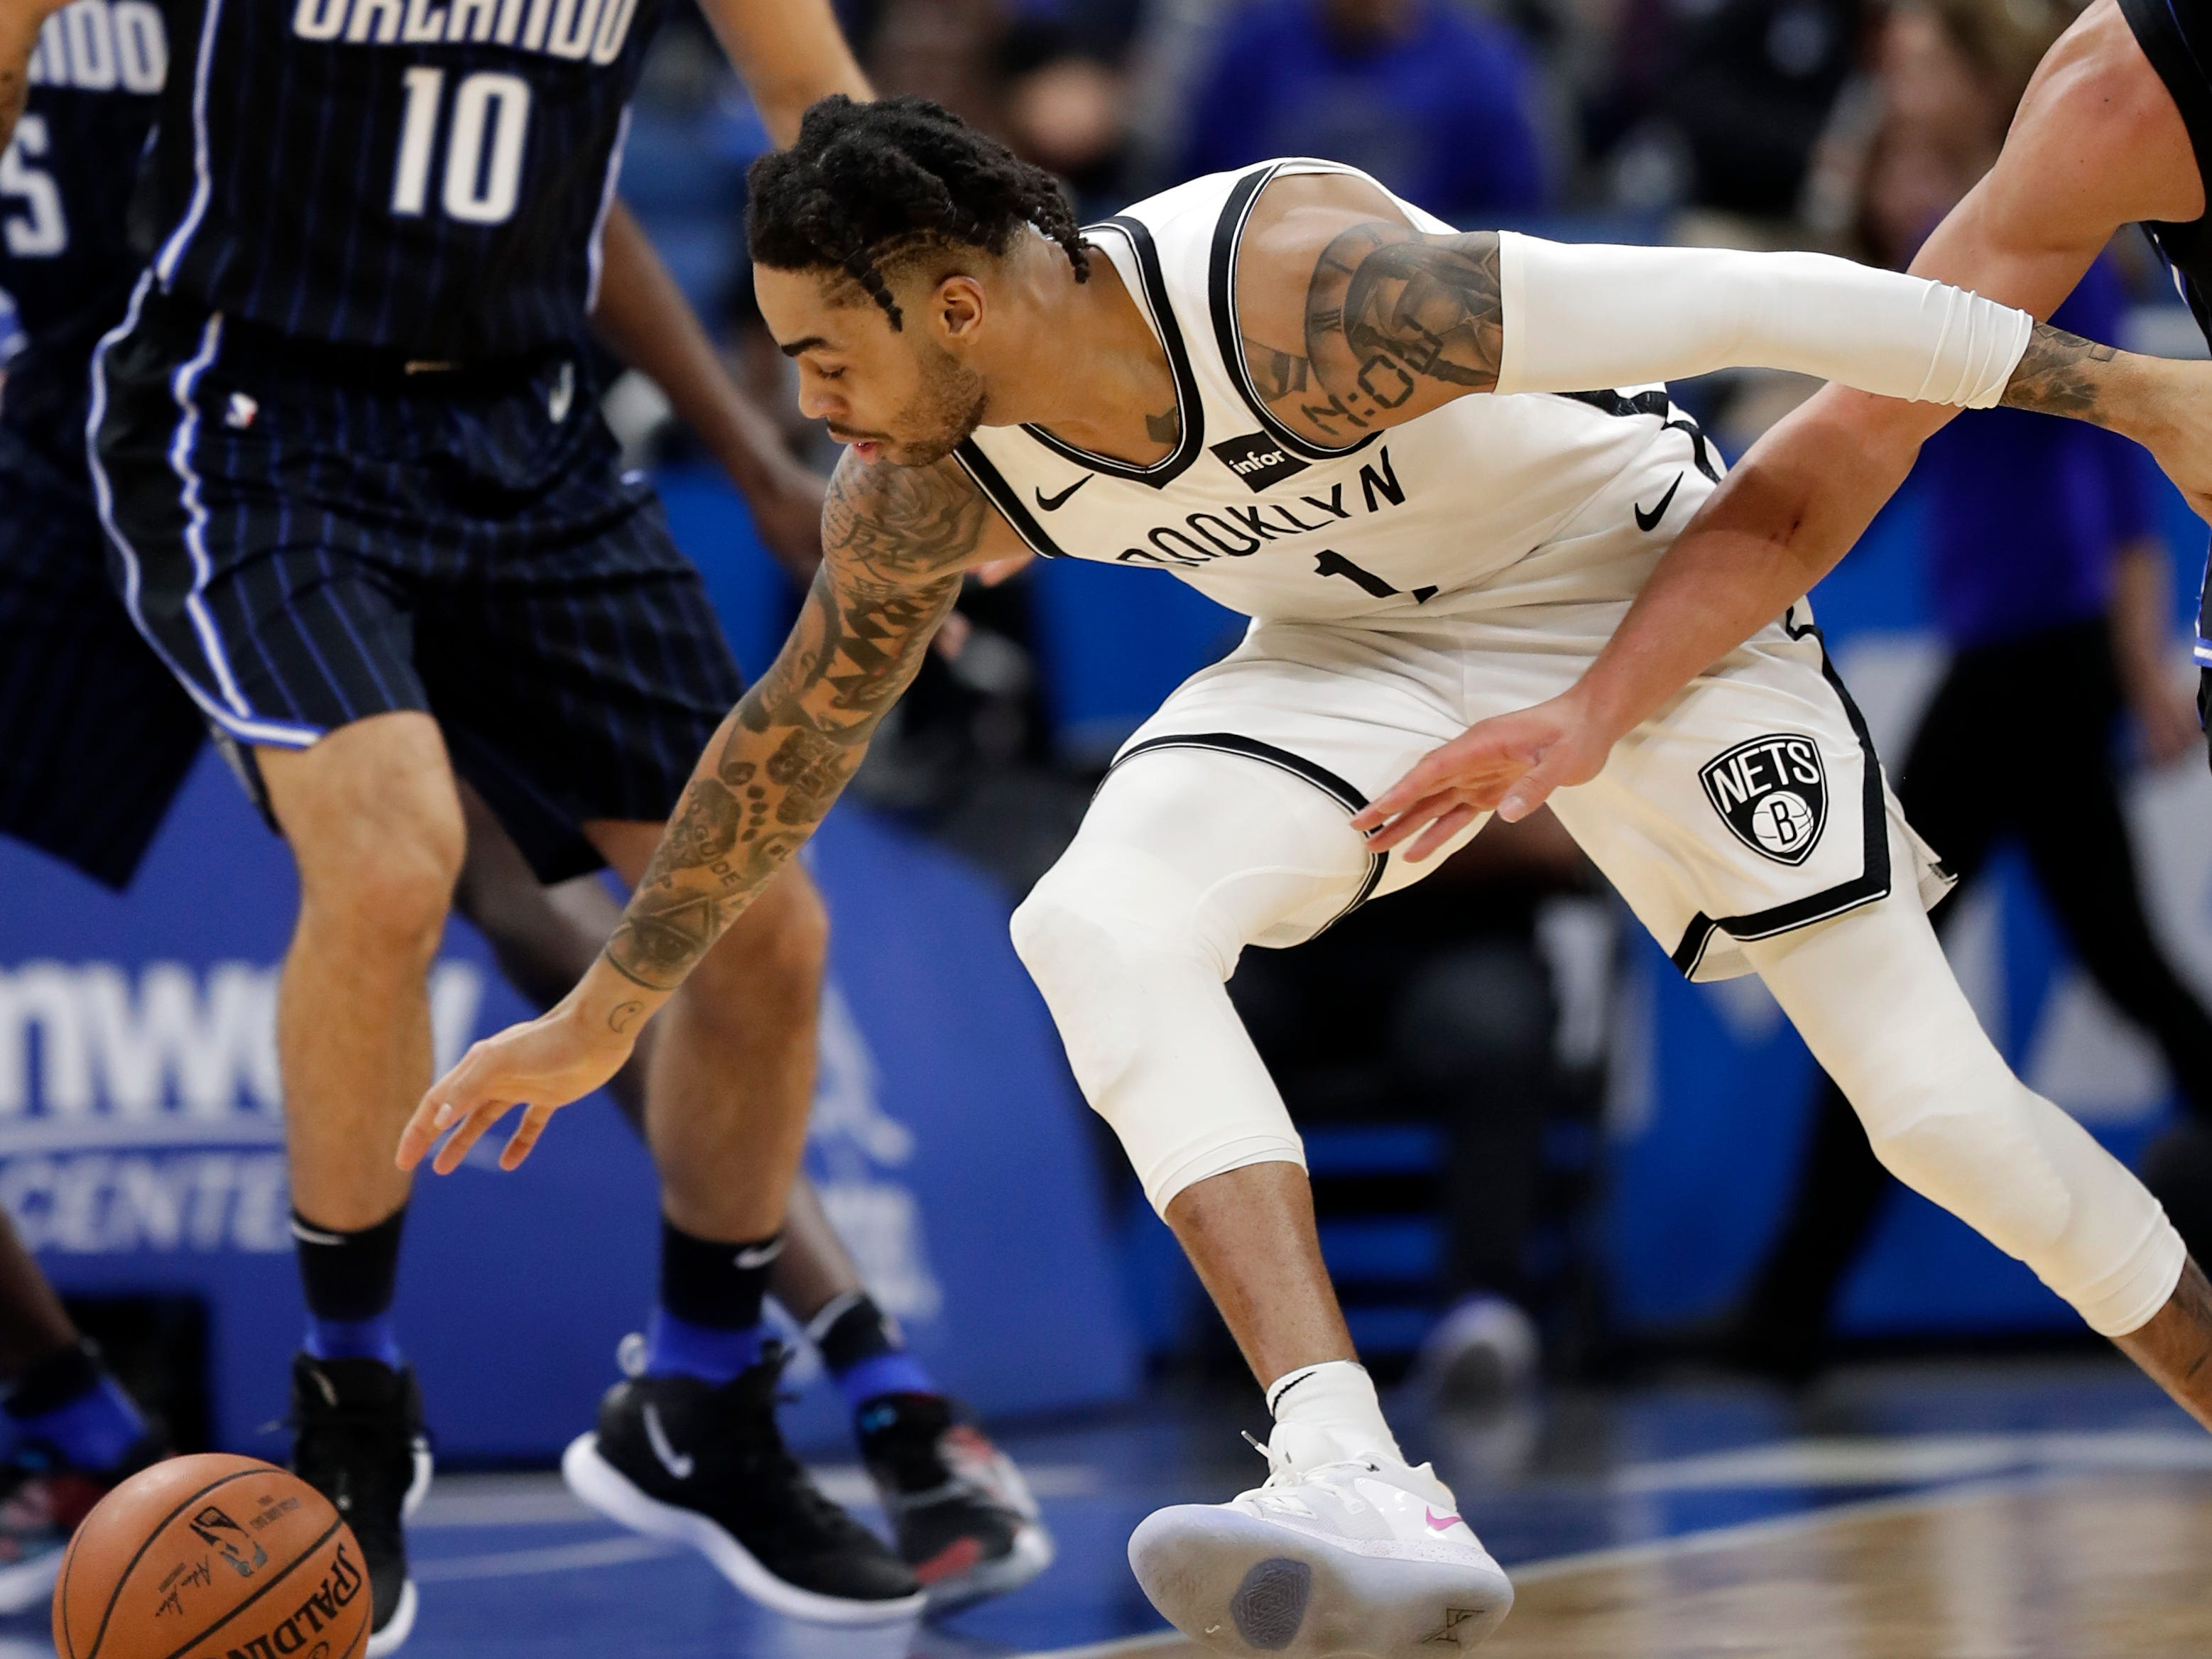 Brooklyn Nets' D'Angelo Russell, right, goes after a loose ball in front of Orlando Magic's Evan Fournier (10) during the first half of an NBA basketball game, Friday, Jan. 18, 2019, in Orlando, Fla.